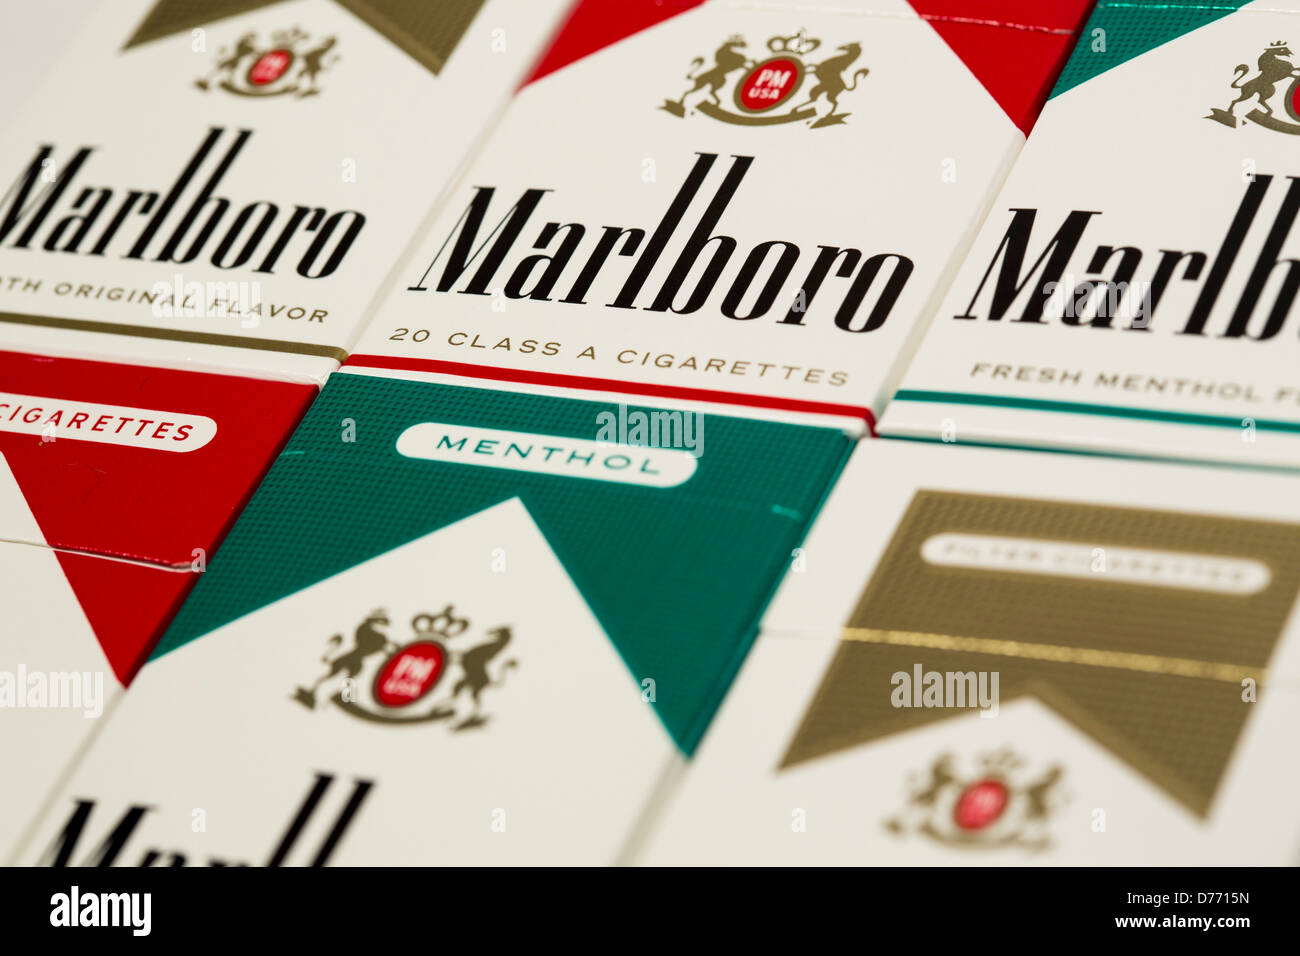 Slim cigarettes Marlboro in New Mexico